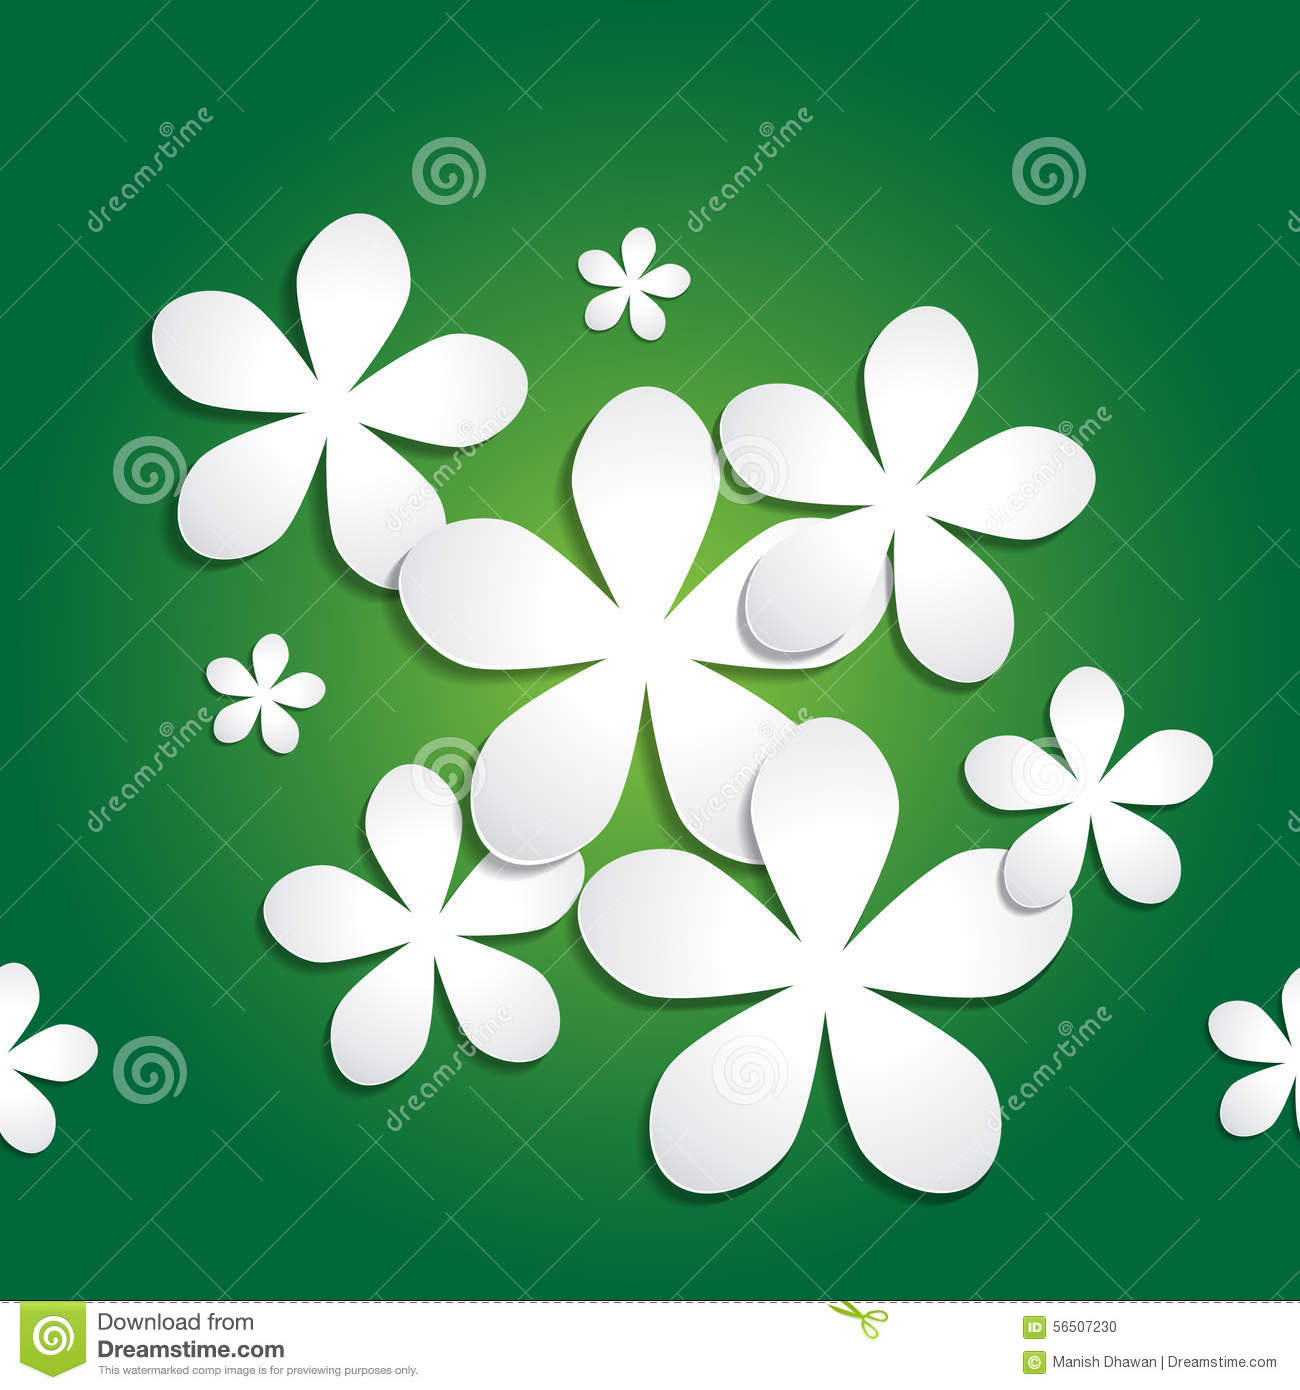 Abstract 3d Paper Flower Pattern On Green Background Stock Vector